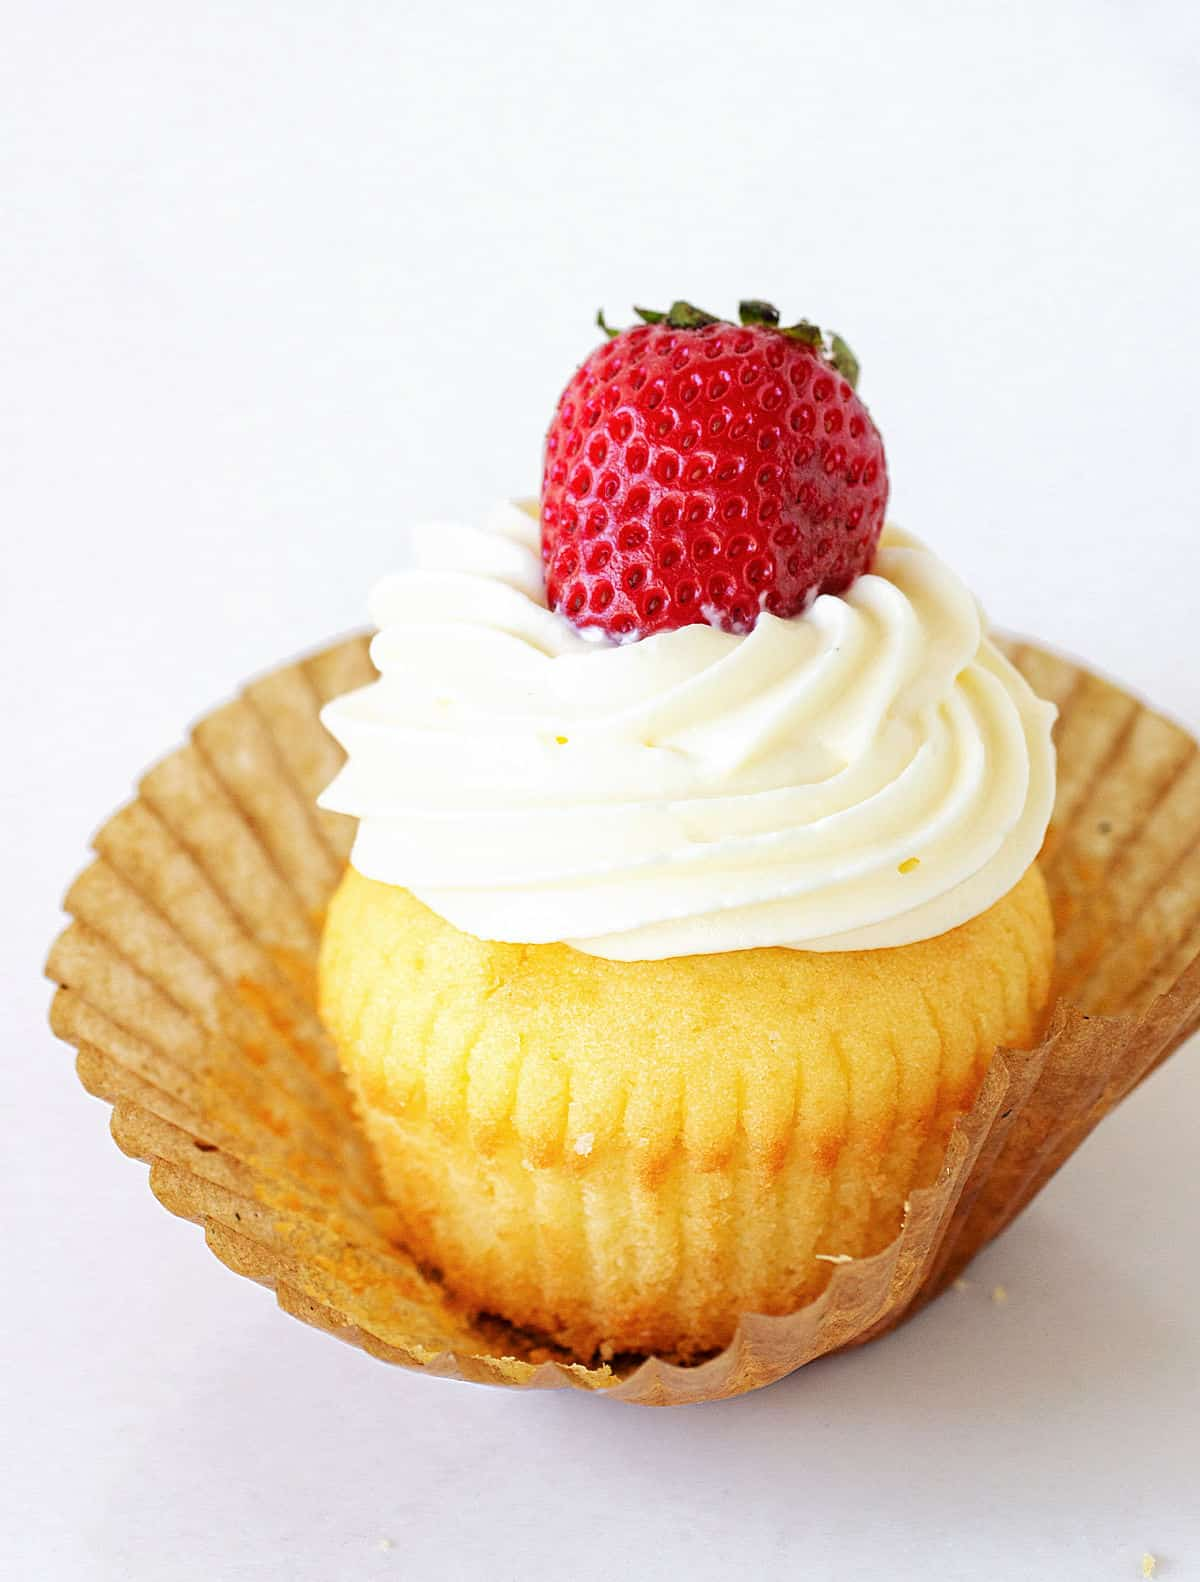 On white surface a vanilla cupcake topped with cream and strawberry in a brown paper liner